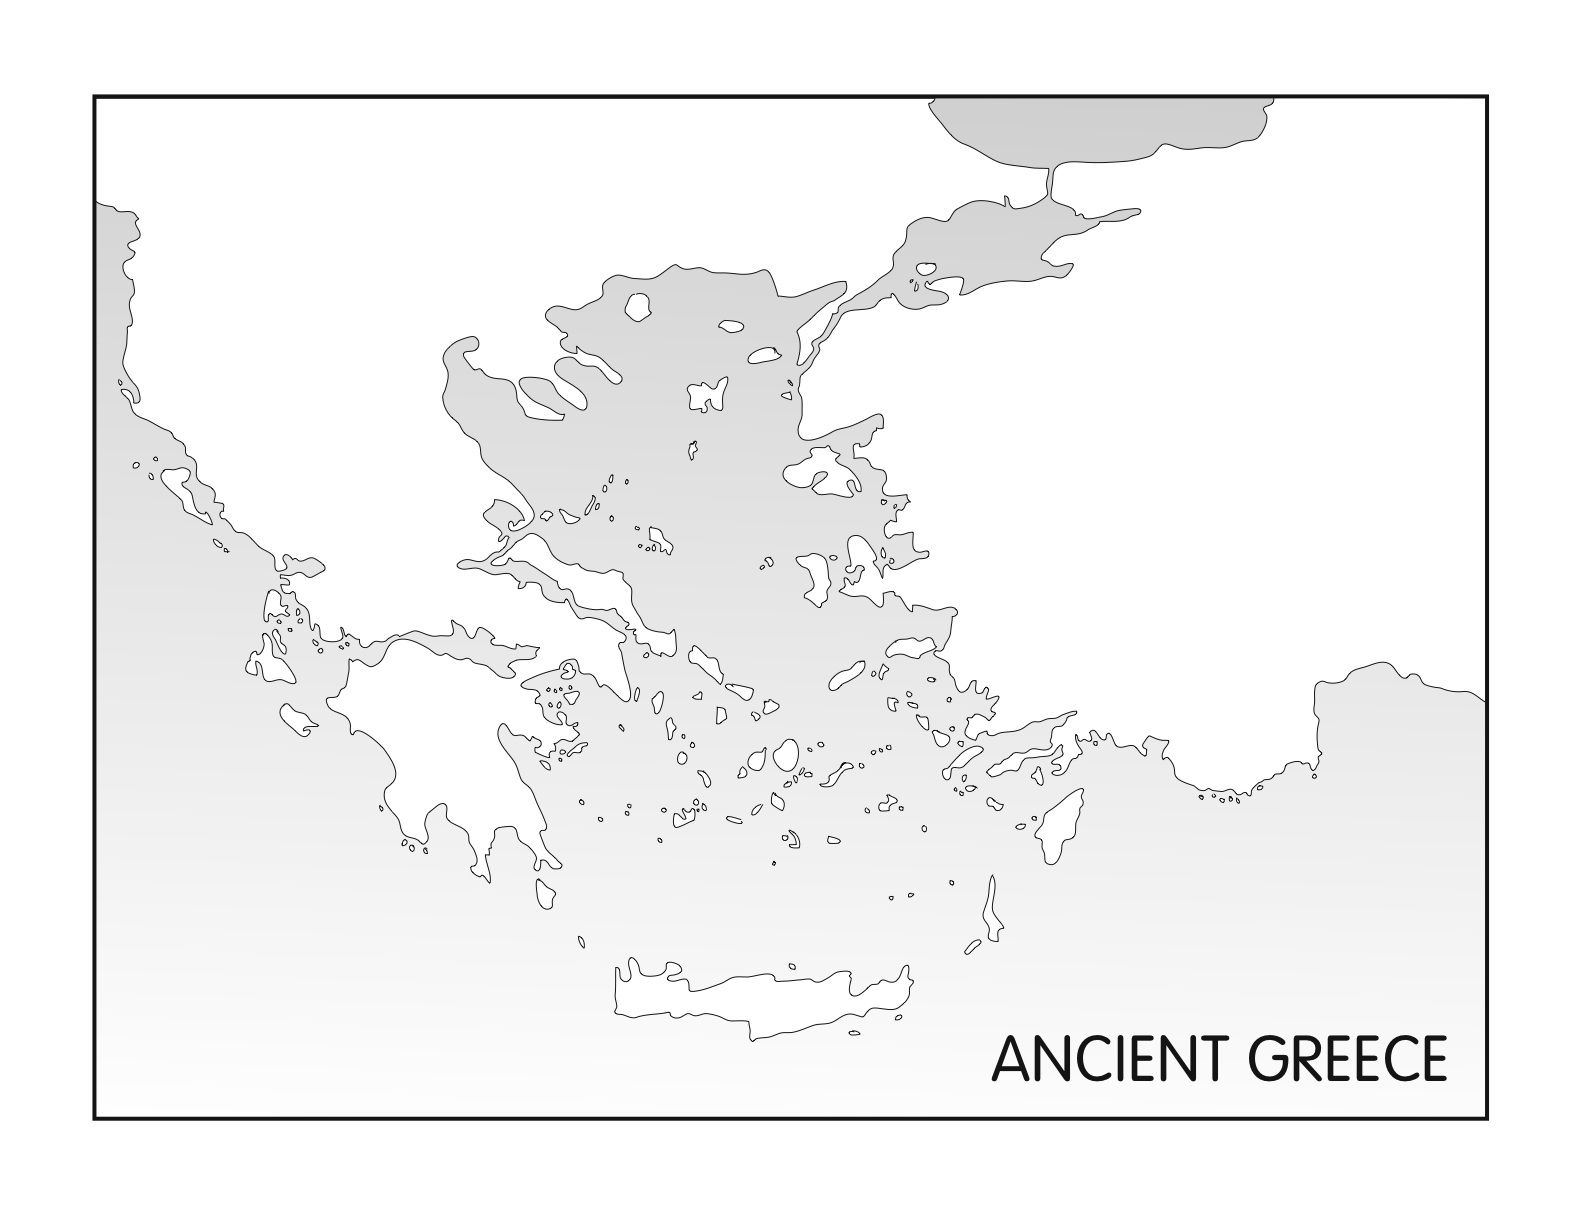 Outline Maps Ancient Egypt And Greece Ancient Greece For Kids